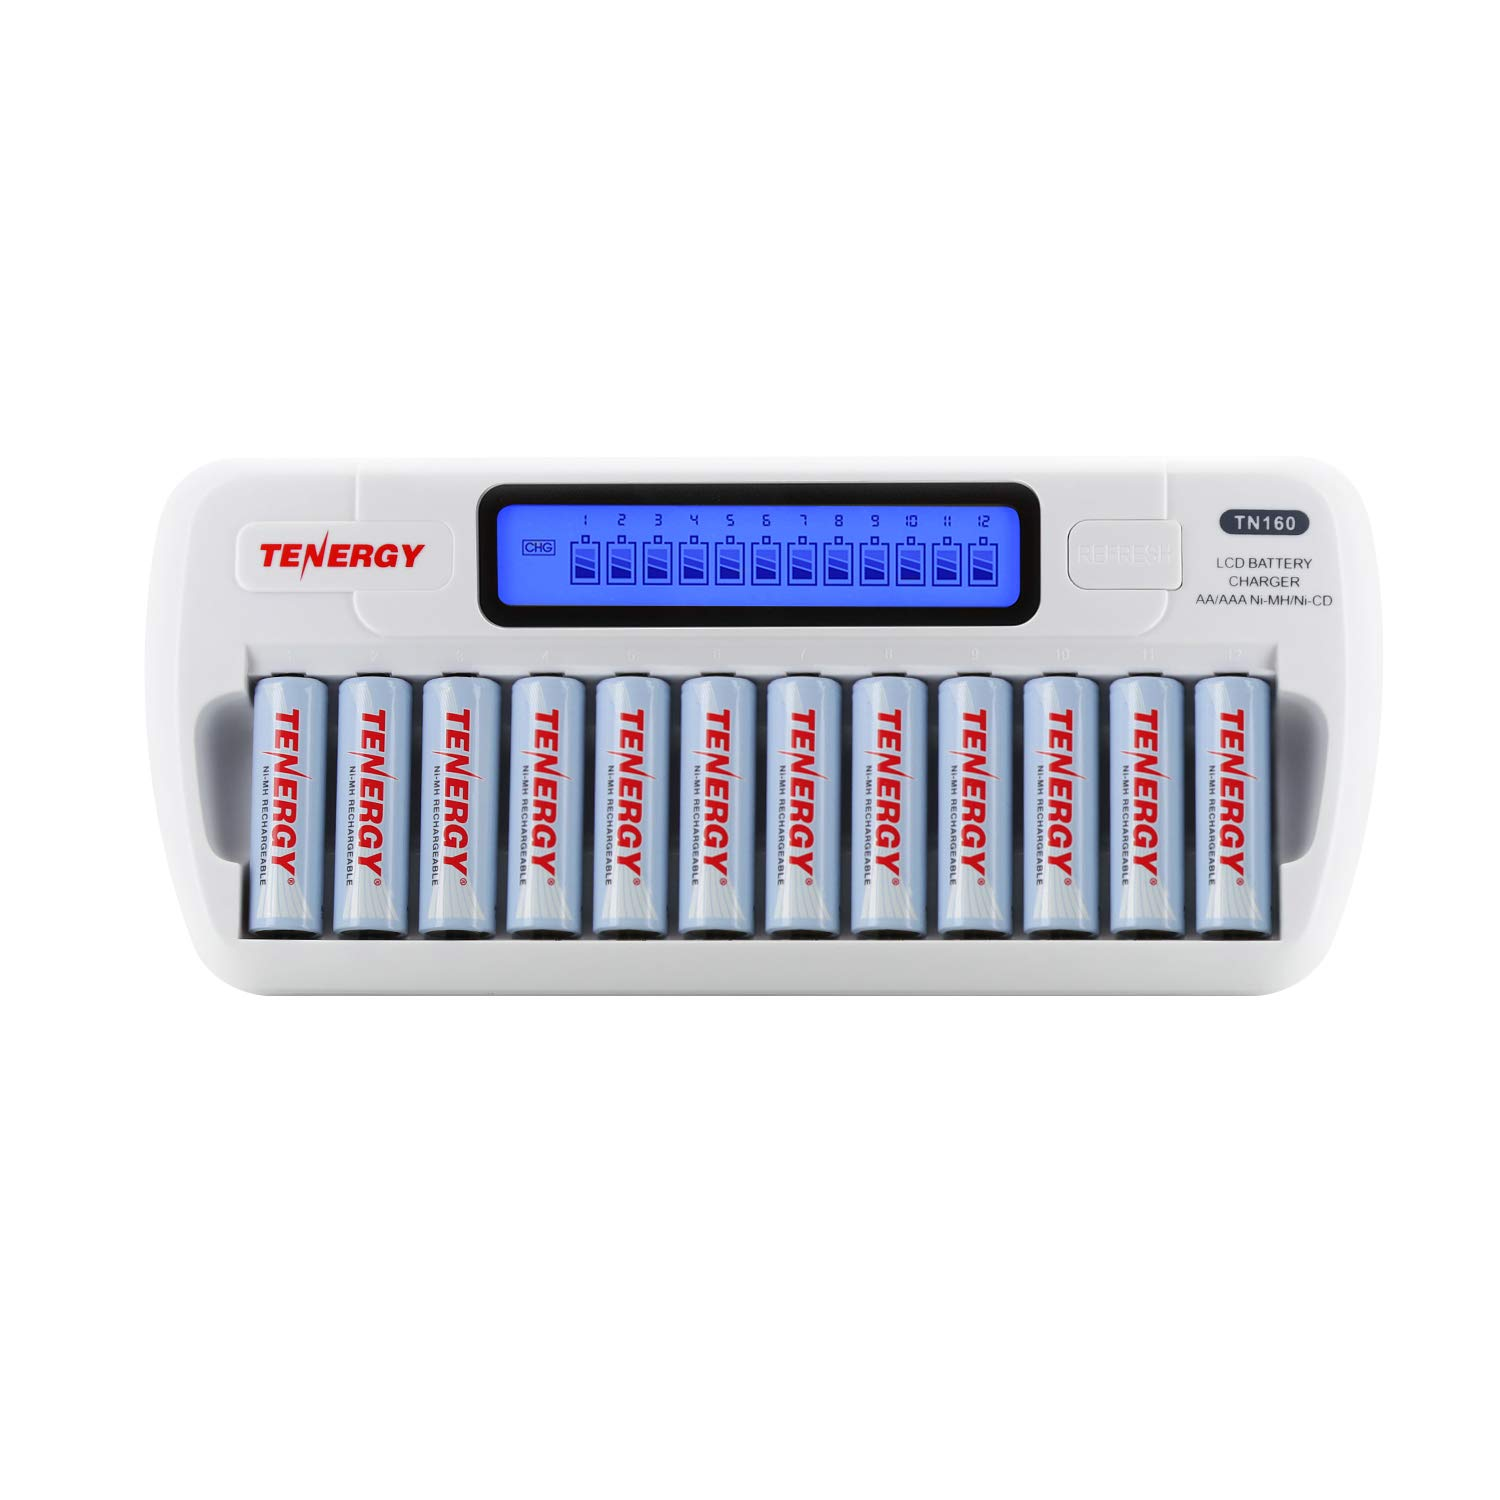 Tenergy TN160 12-Bay LCD NiMH/NiCD AAA/AA Battery Charger + 12x AA NiMH Rechargeable Batteries, Double A Batteries for Everyday Electronics